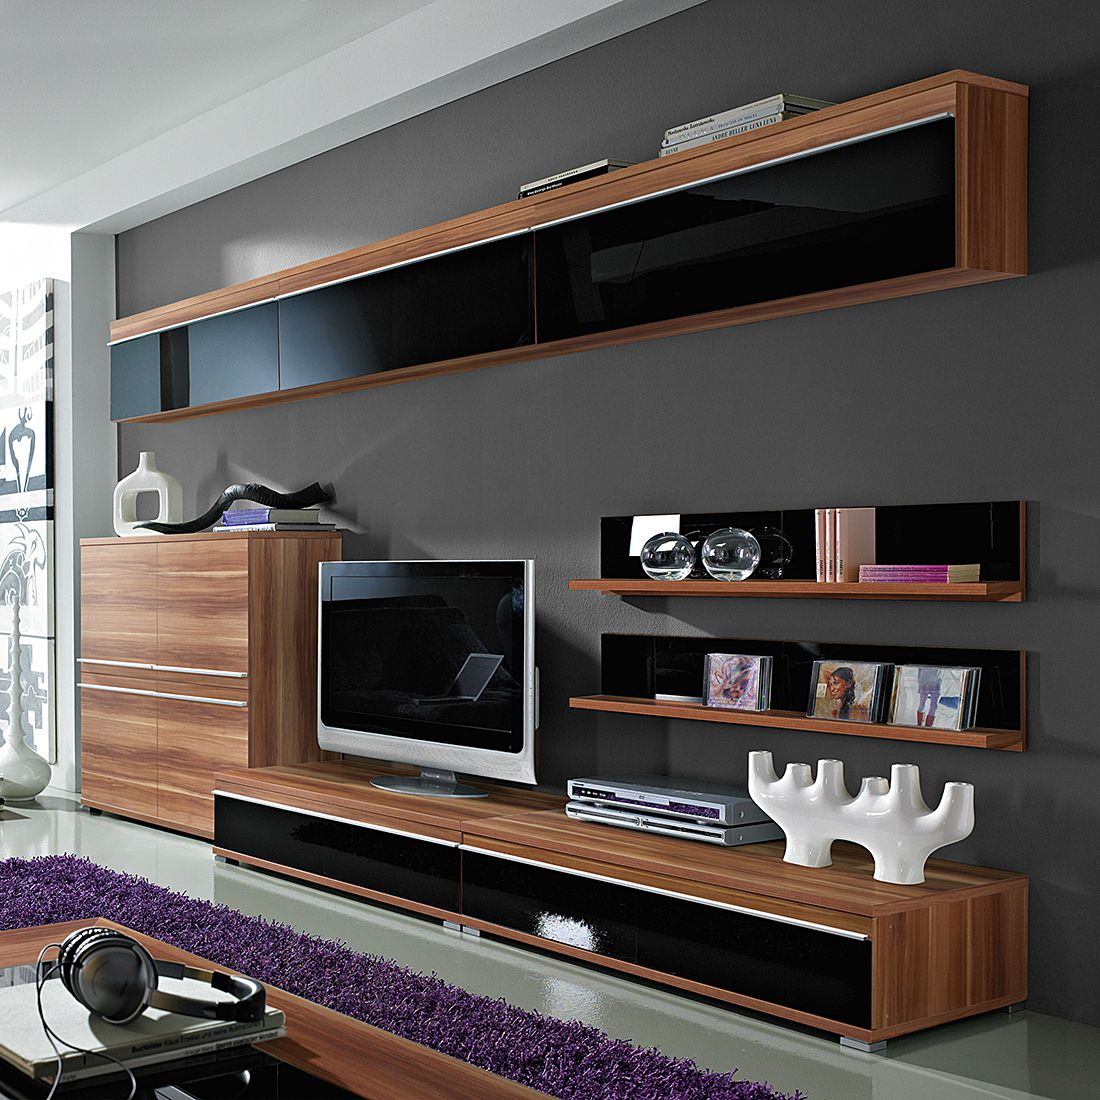 top square archive. Black Bedroom Furniture Sets. Home Design Ideas